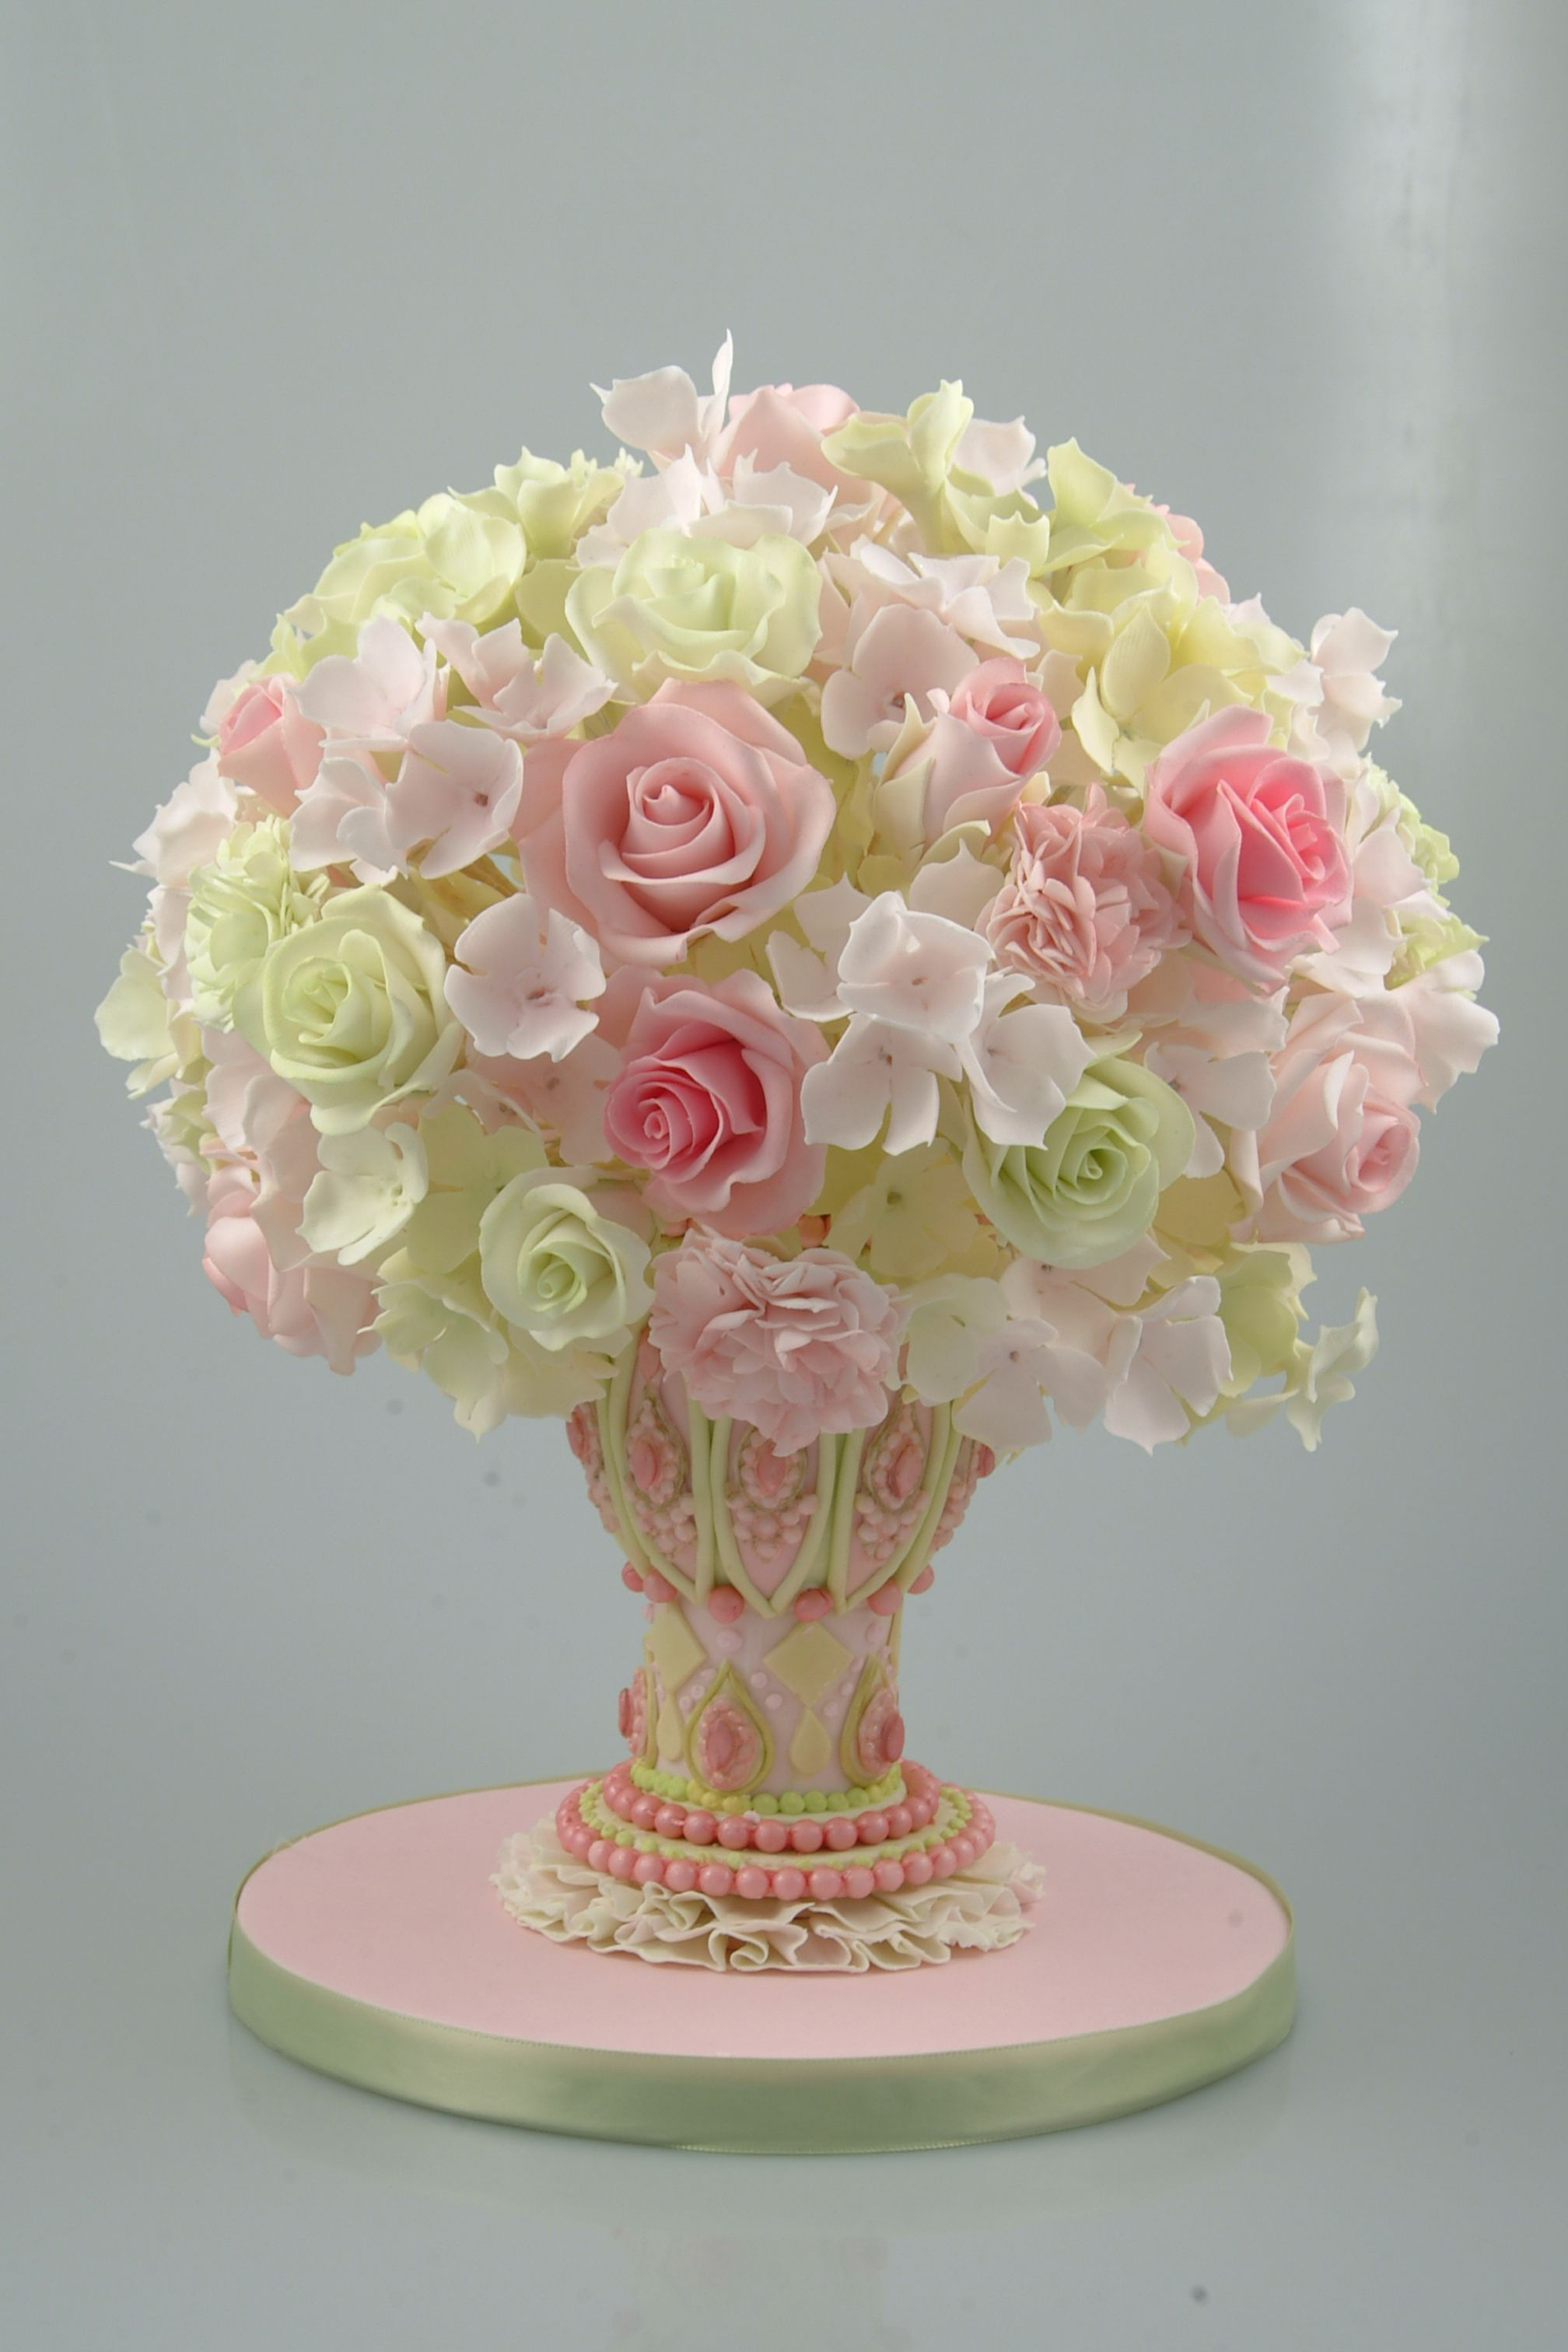 Sugar flower arrangement wedding cakes pinterest sugar sugar flower arrangement izmirmasajfo